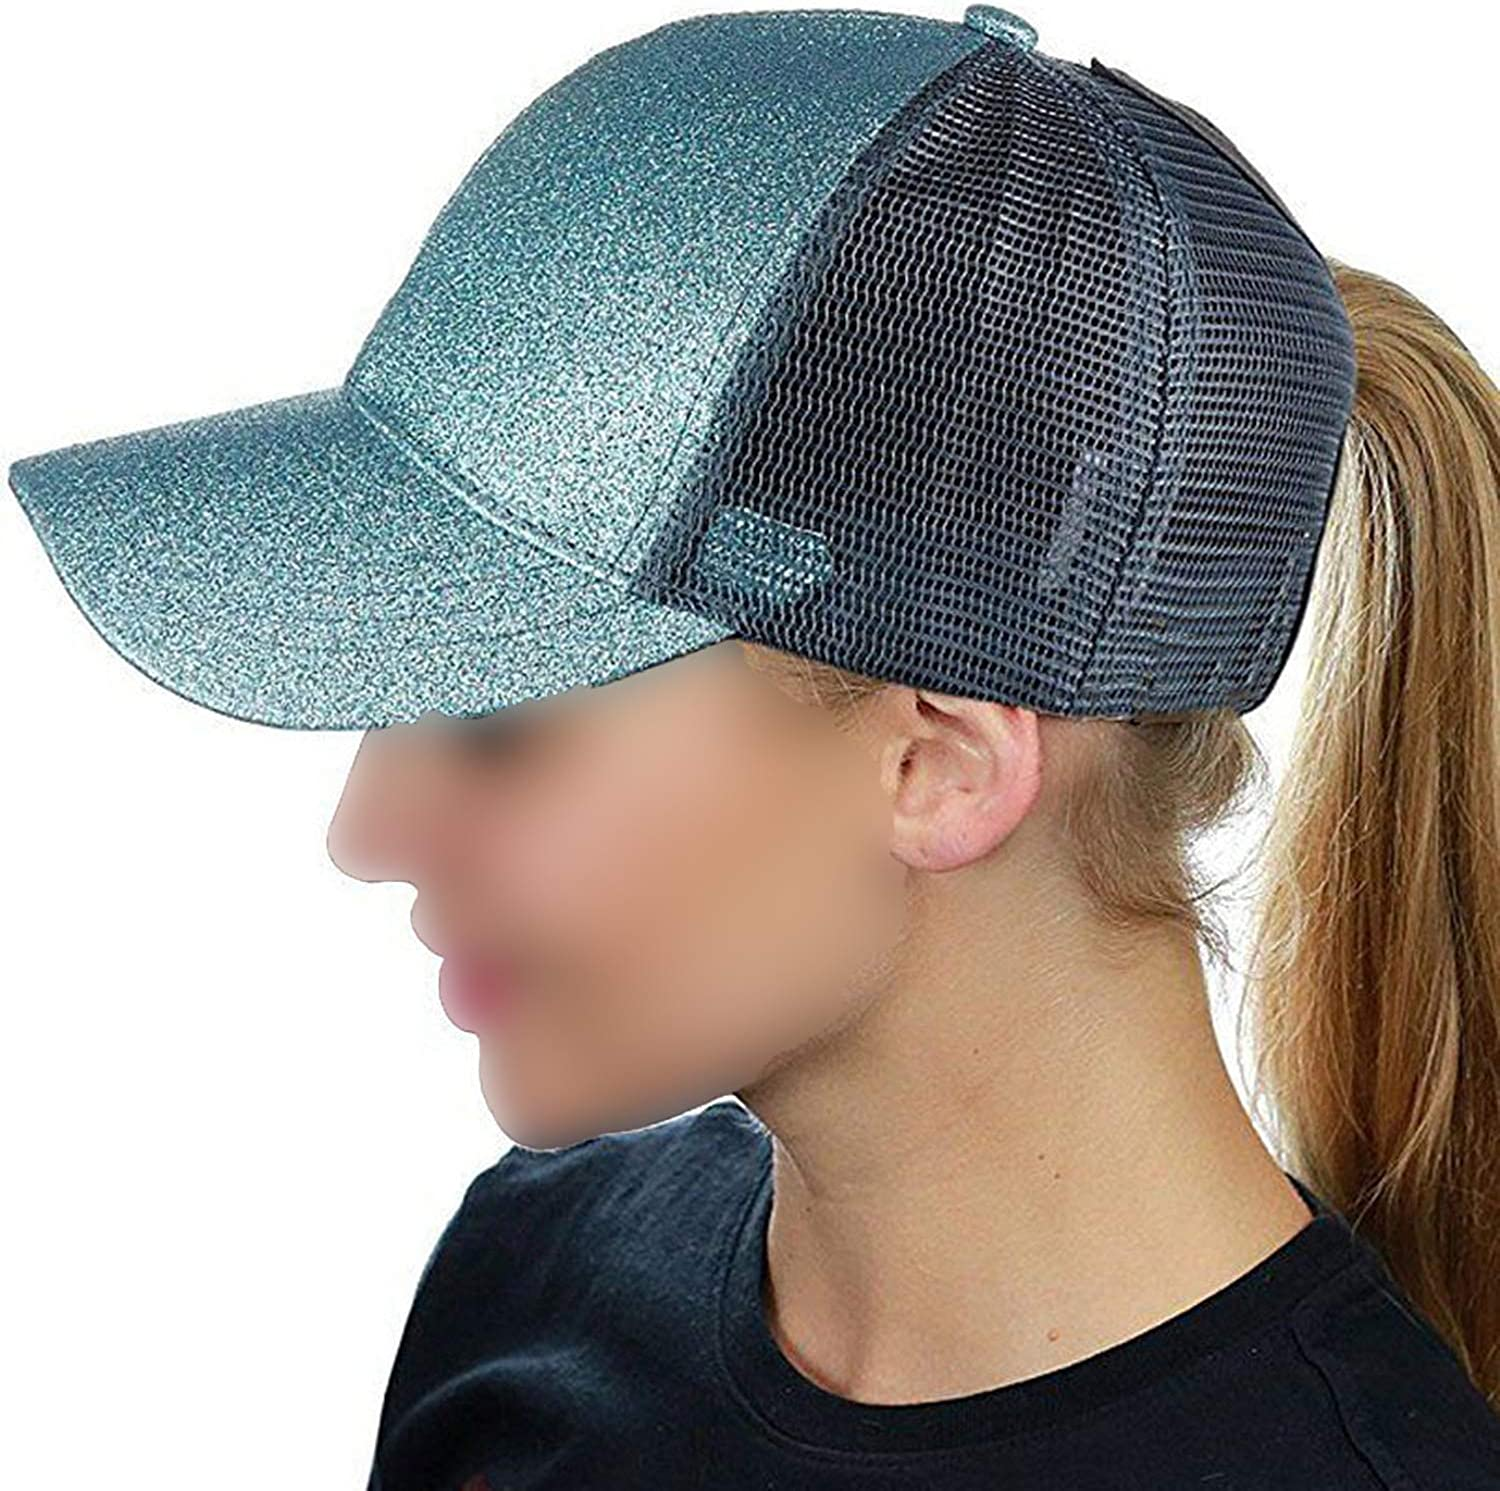 Mageed Anna 2019 Fashion Ponytail Womens Baseball Cap Mesh Summer Cap Casquette Femme Adjustable Dad Hat Tennis Cap